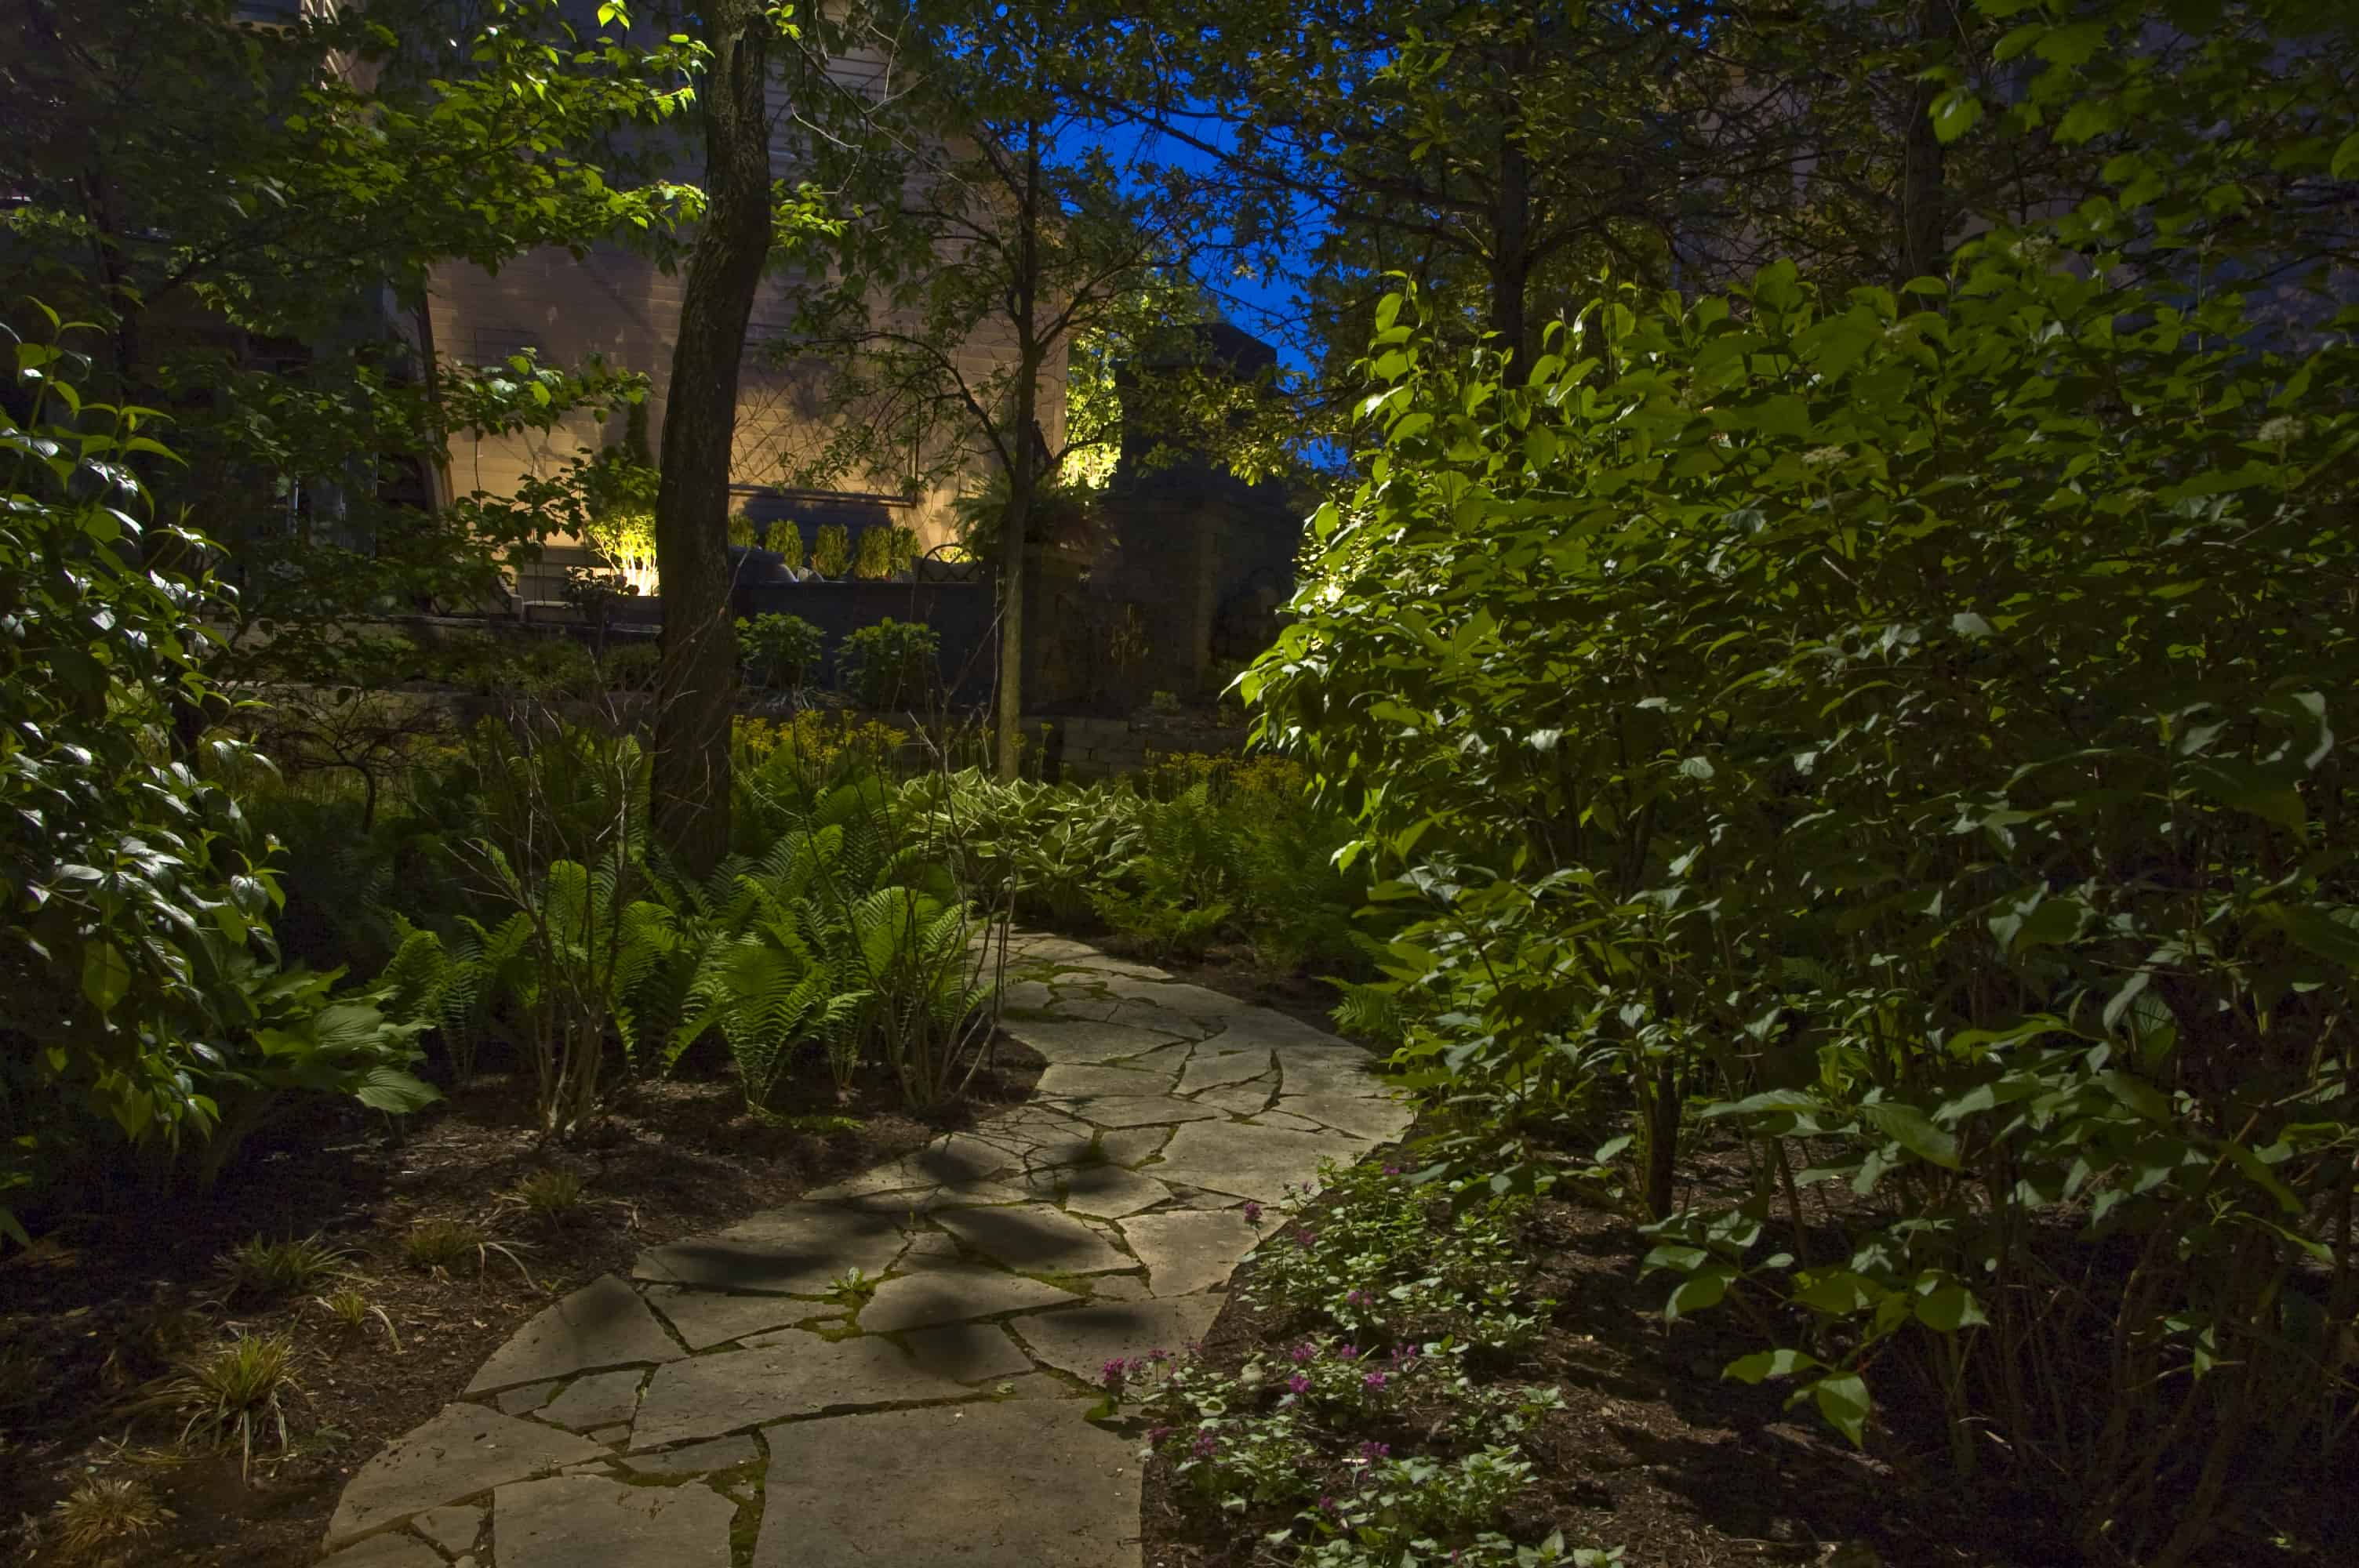 landscaping ideas, walkways and pathways ideas, diy painting ideas, path paving ideas, accessories ideas, diy walkway ideas, solar powered ideas, path garden ideas, rock painting ideas, solar light ideas, front walkway ideas, october wedding decoration ideas, on forest path lighting ideas